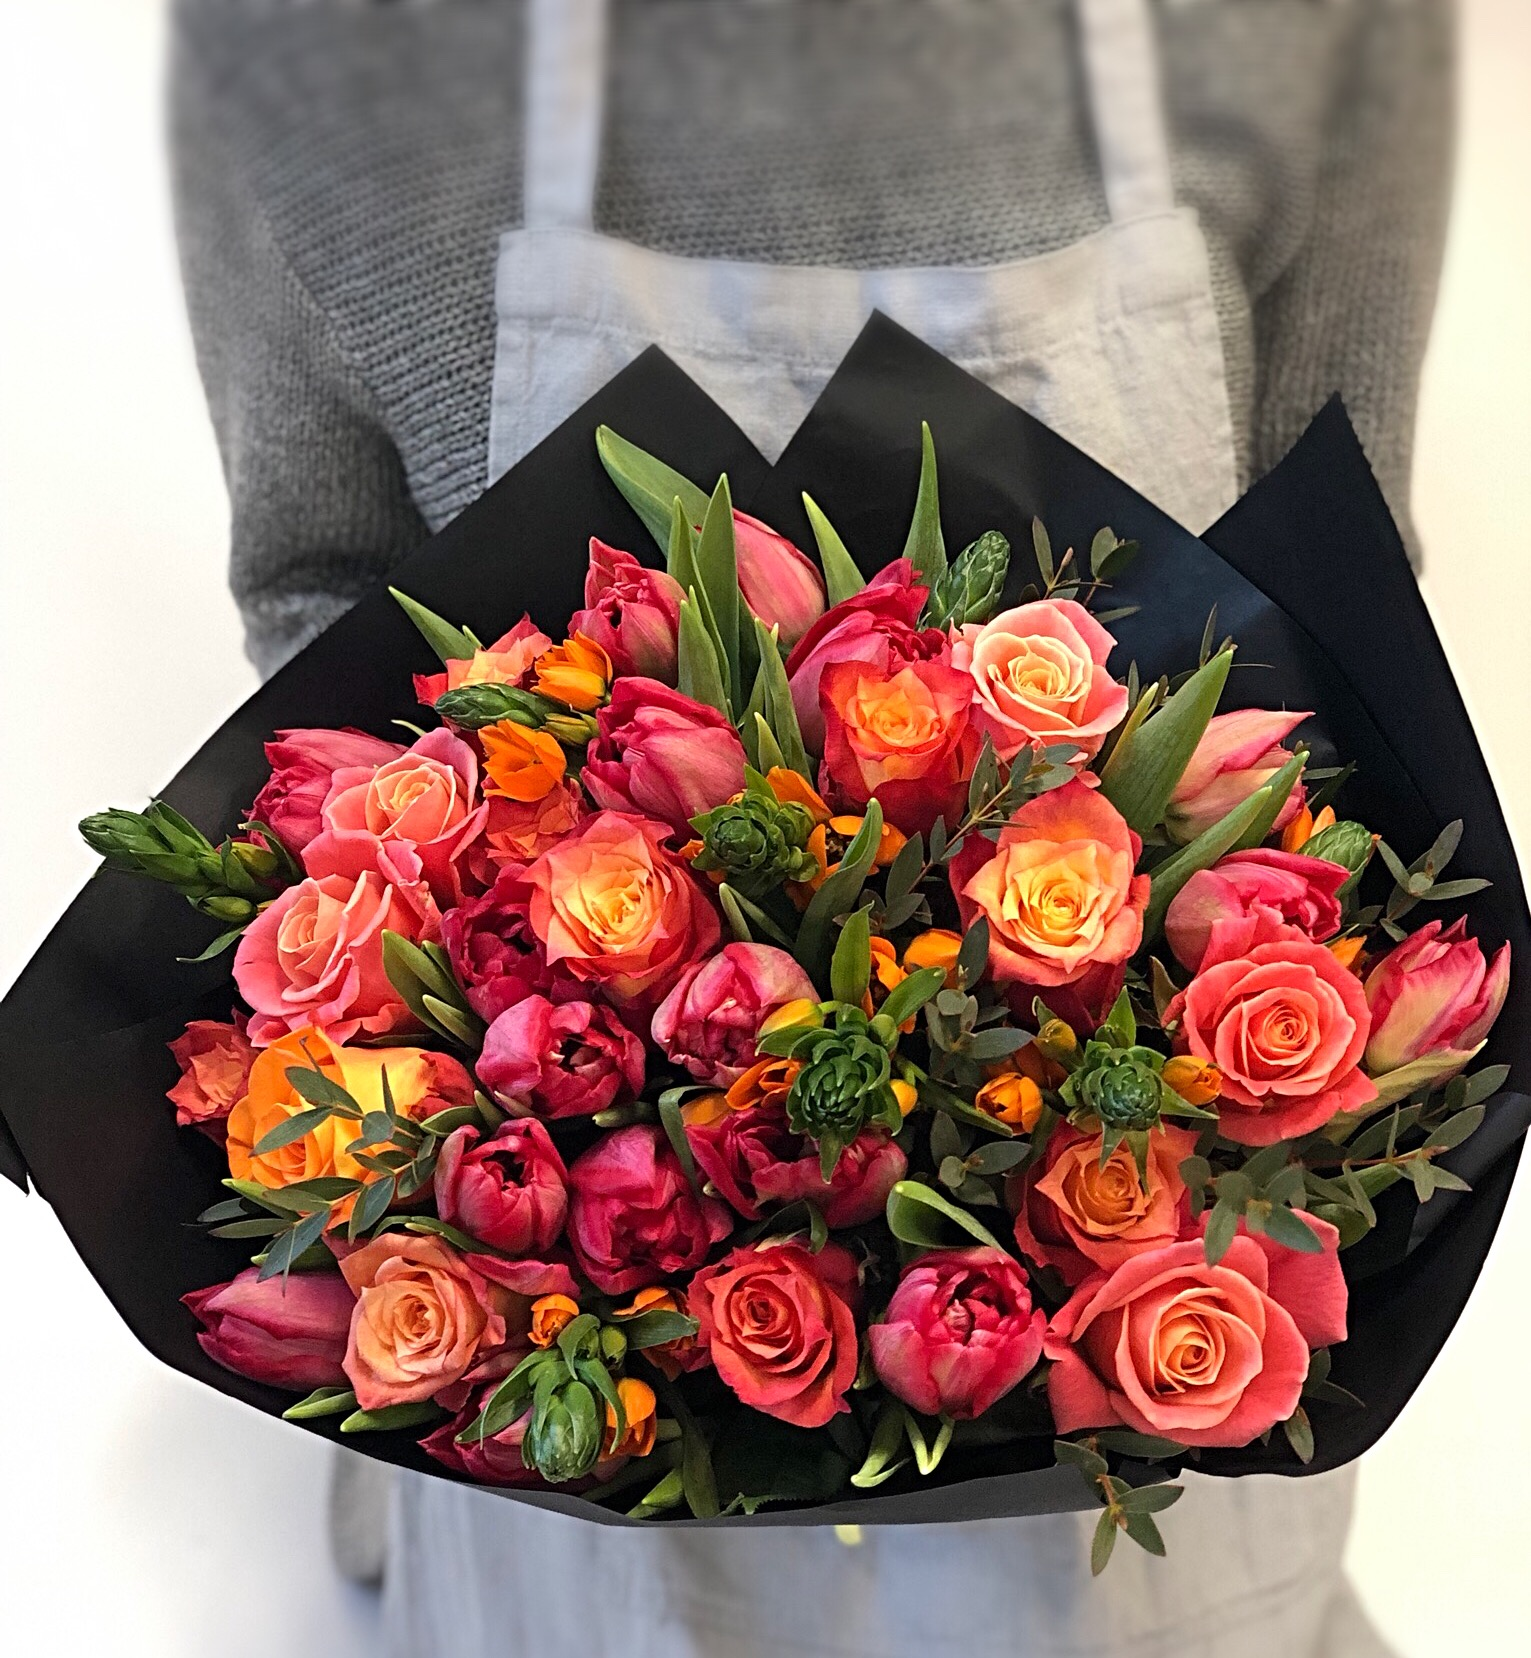 Orange and red flower bouquet wrapped in black paper